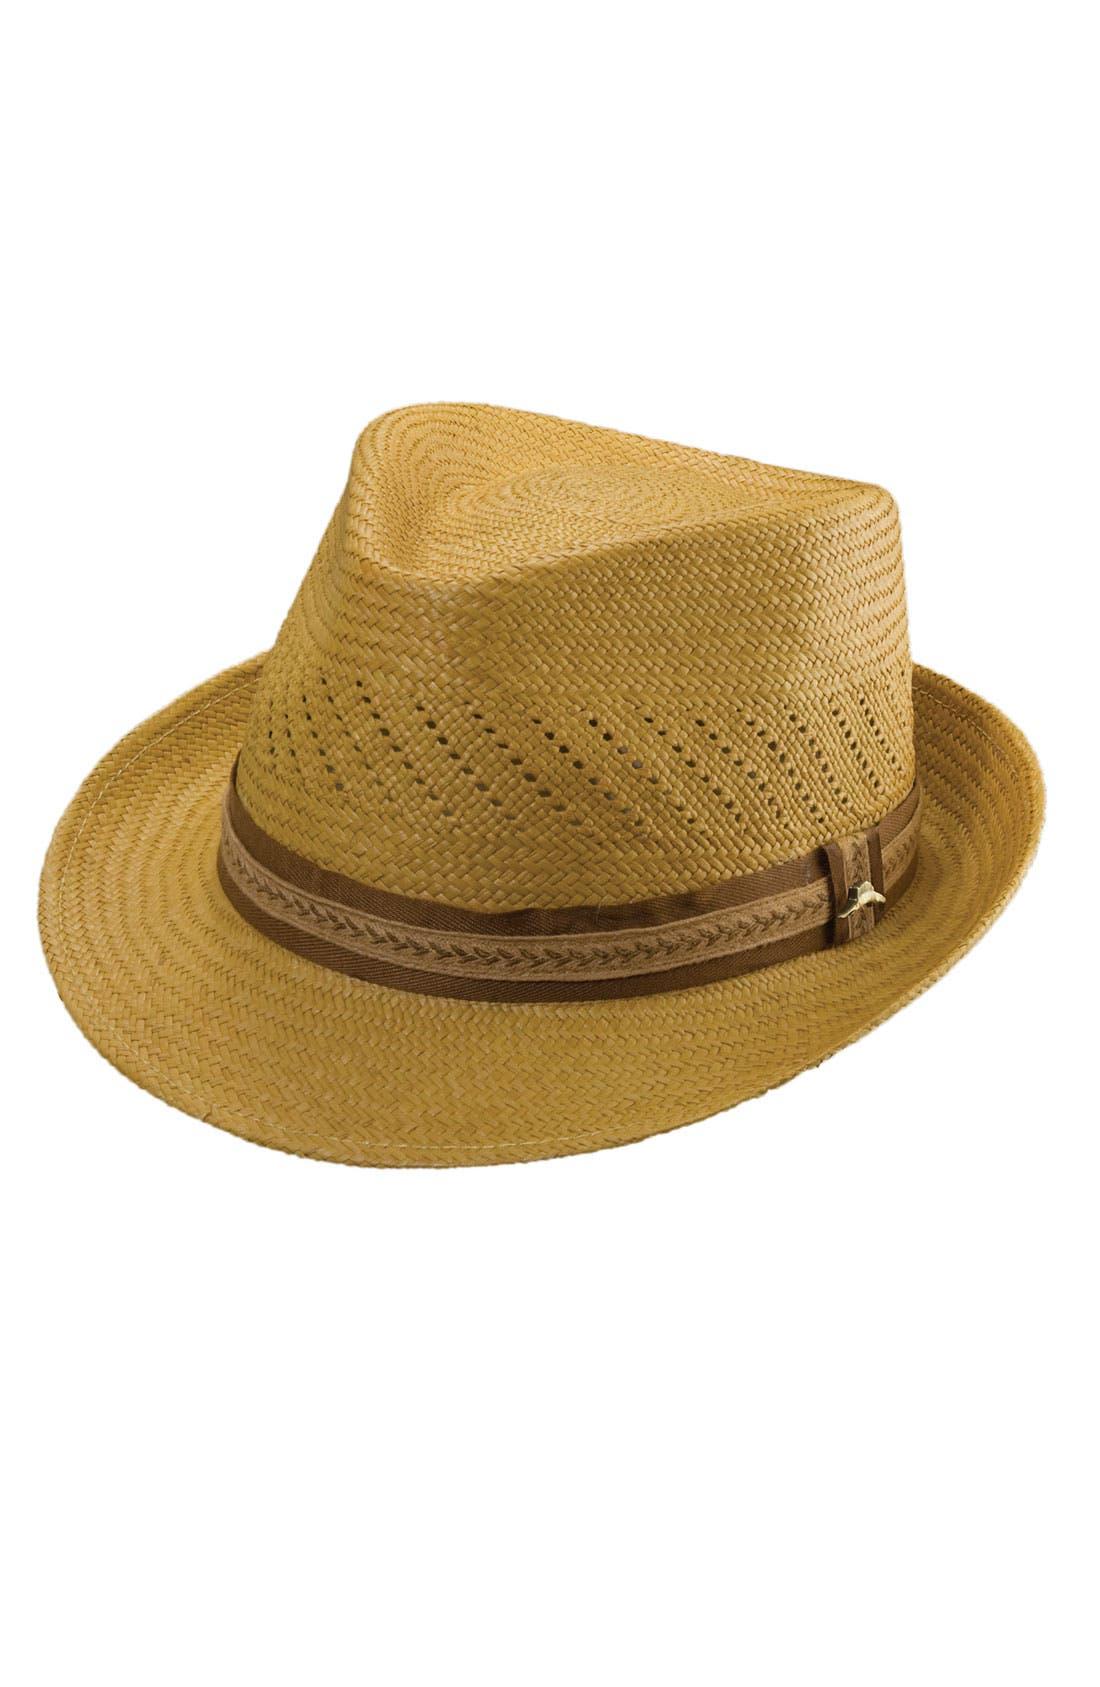 Alternate Image 1 Selected - Tommy Bahama Perforated Panama Straw Fedora